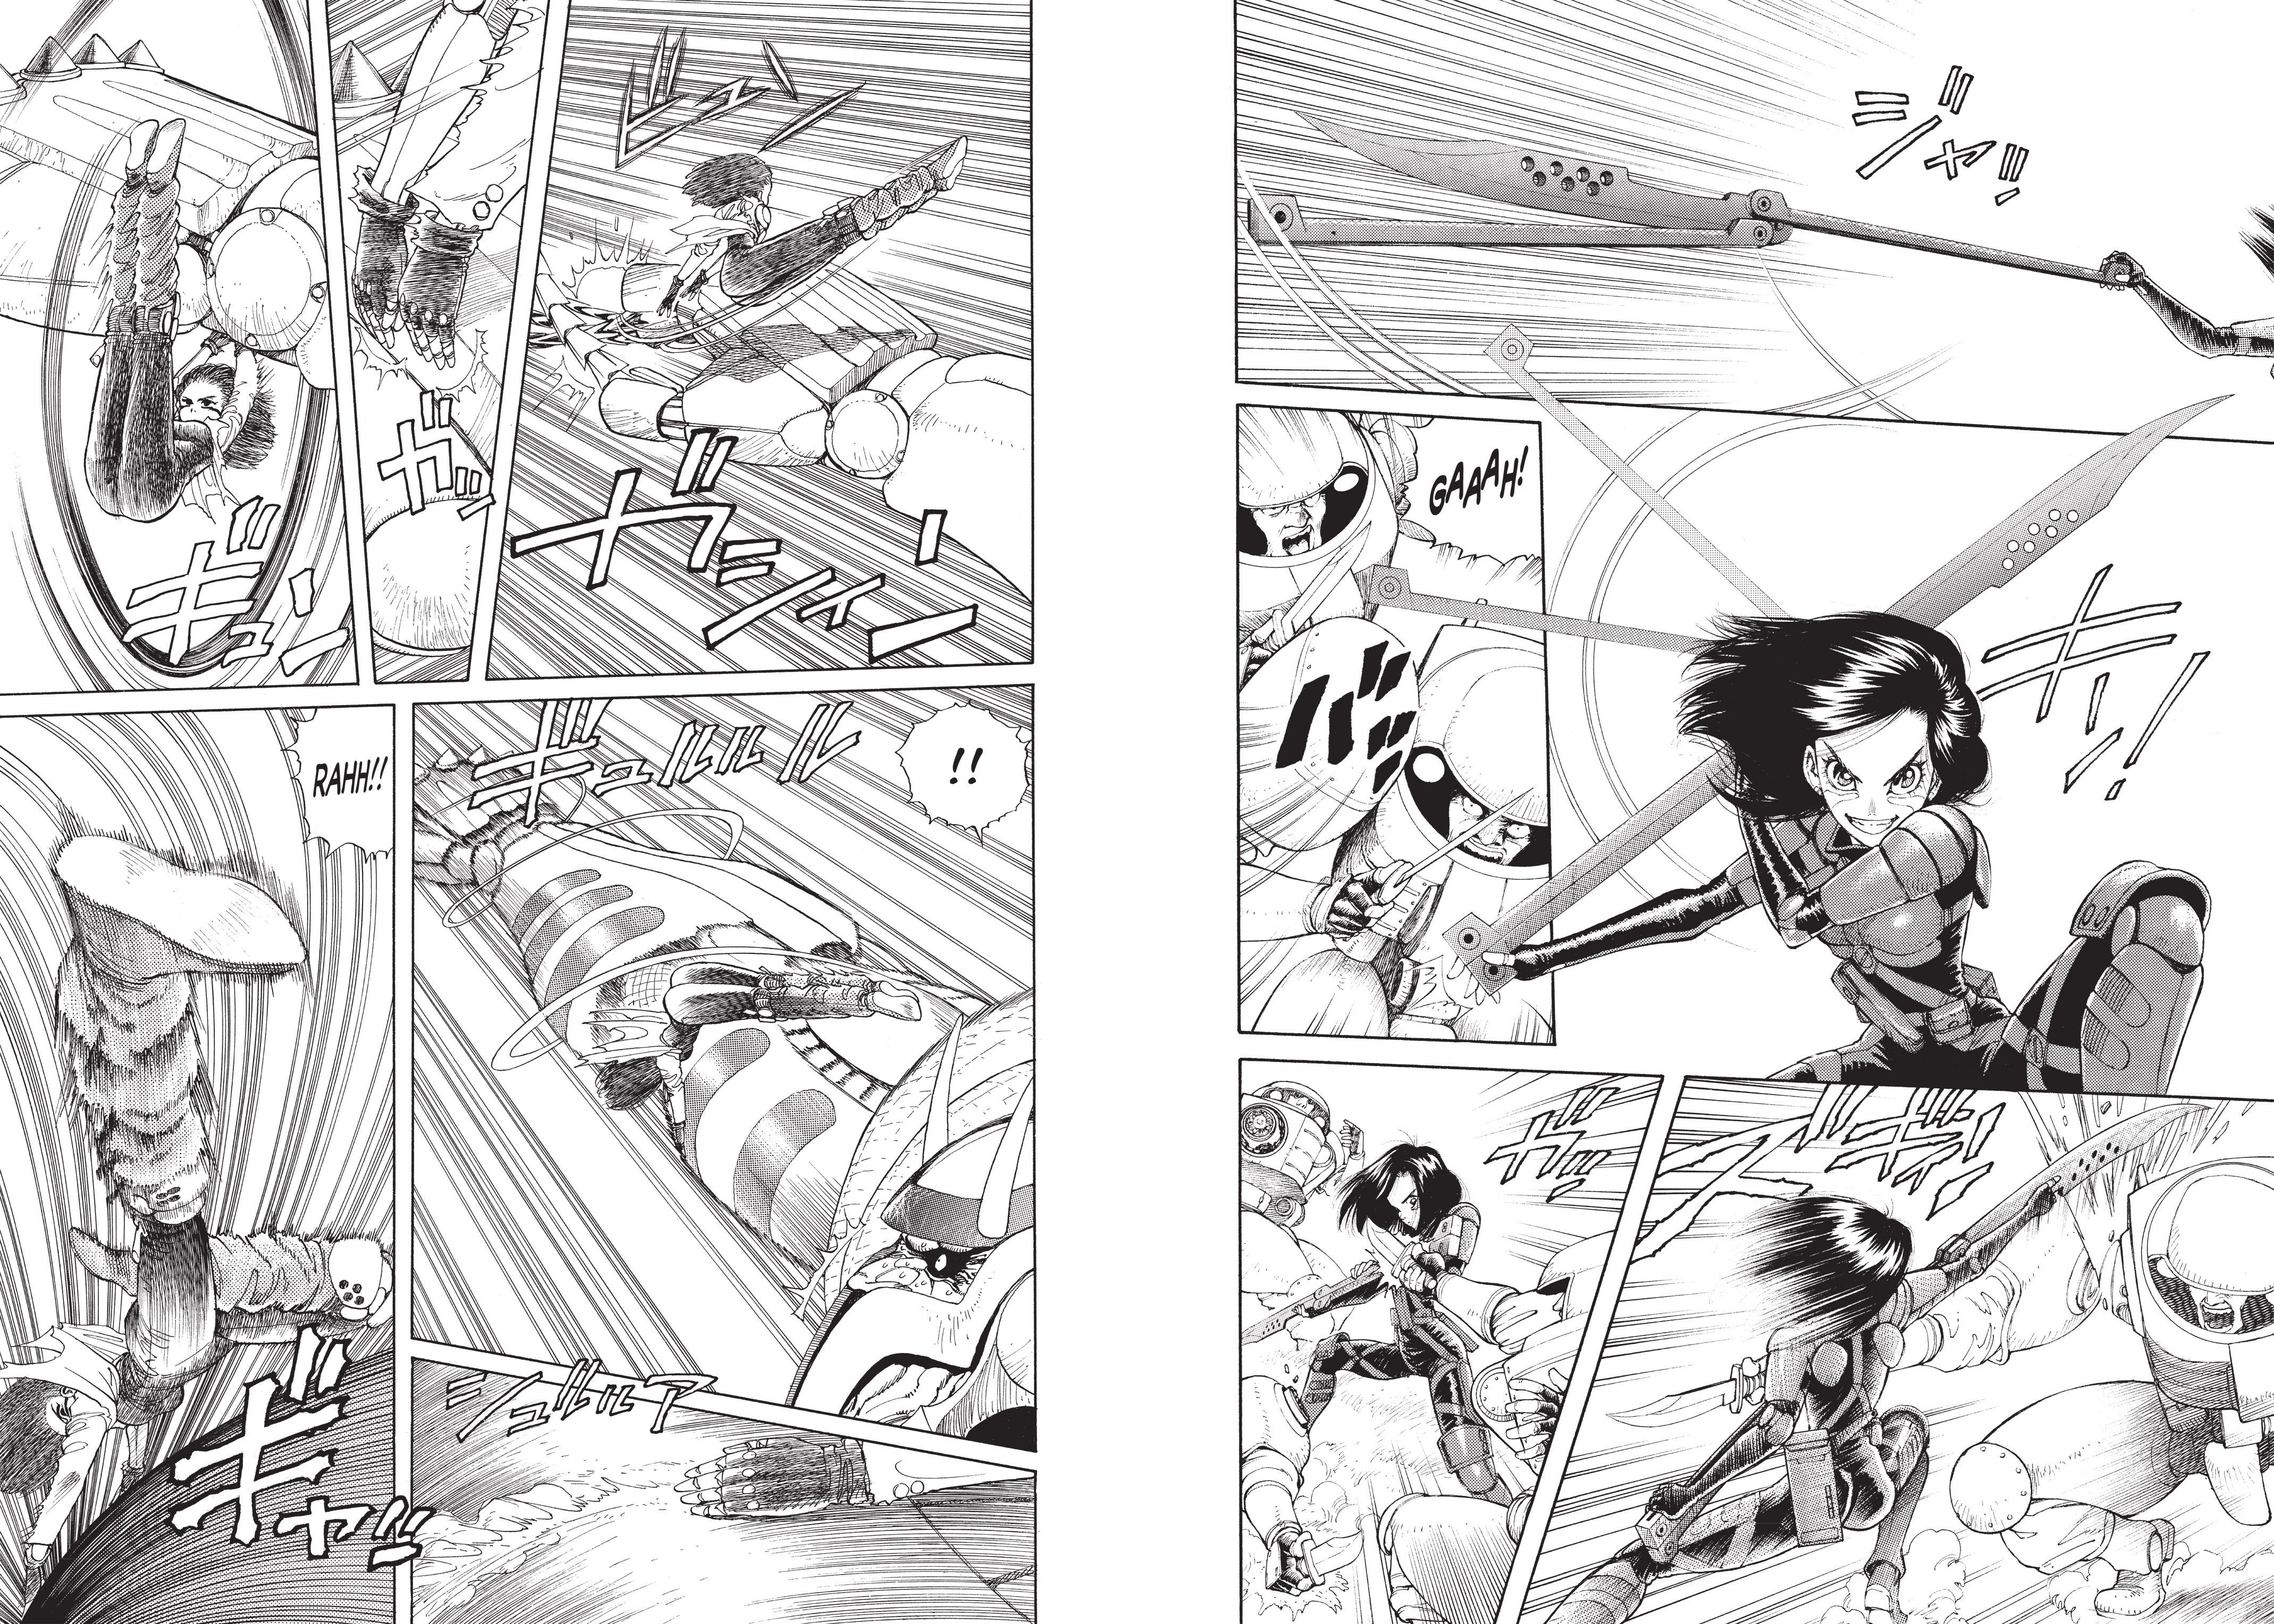 Battle Angel Alita Deluxe Edition Box set review